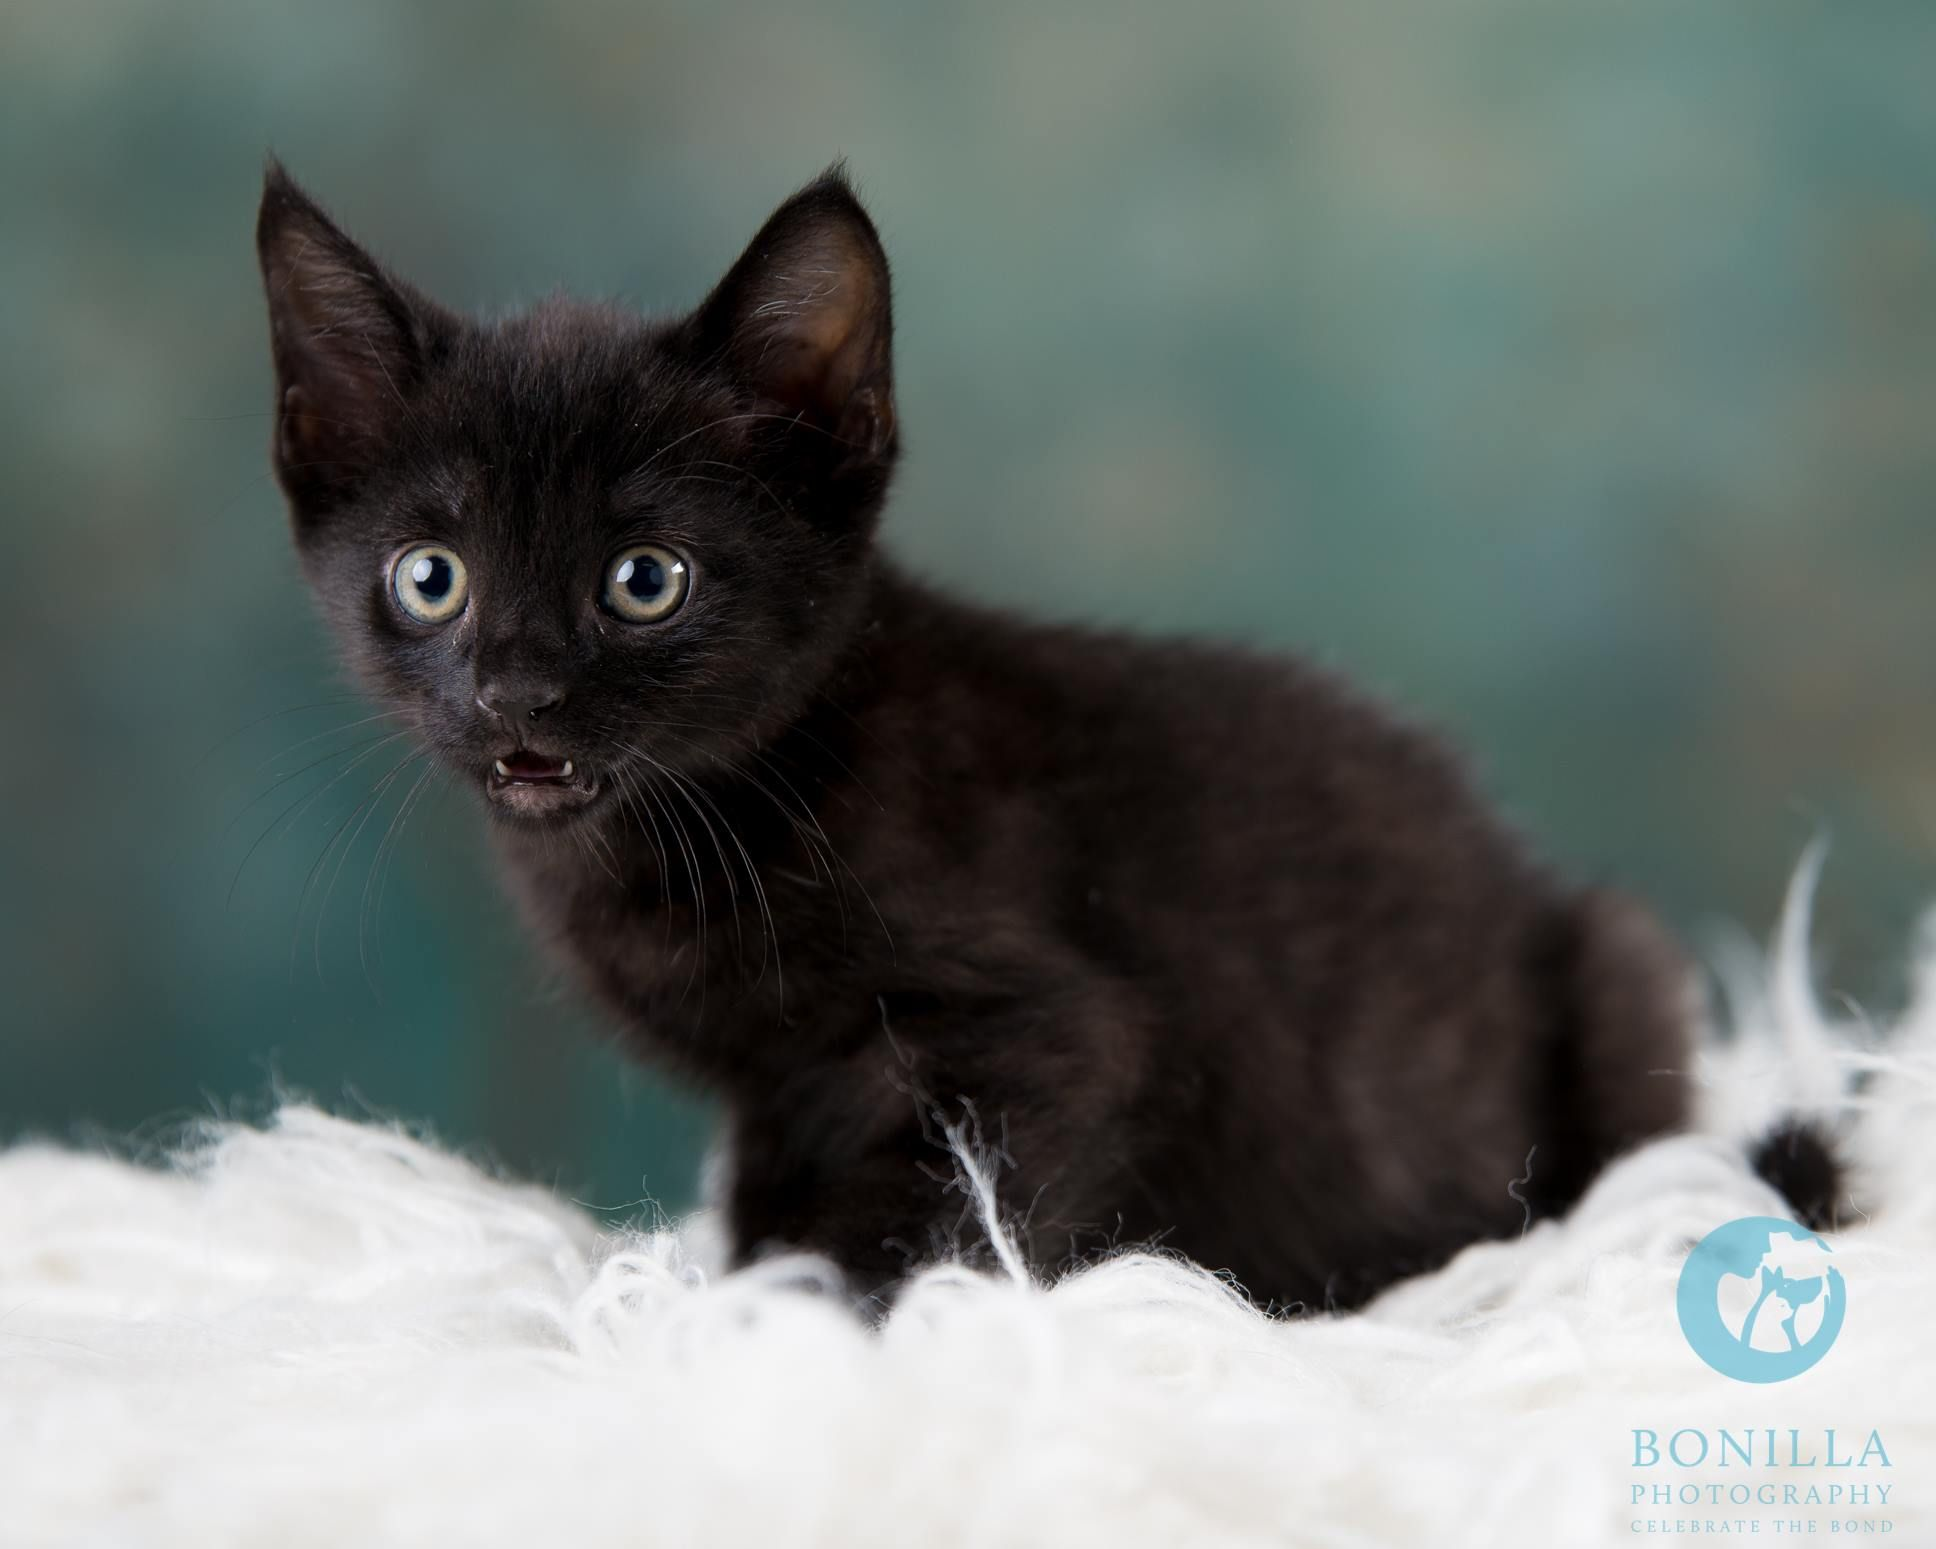 I had the chance to photograph some foster kittens the